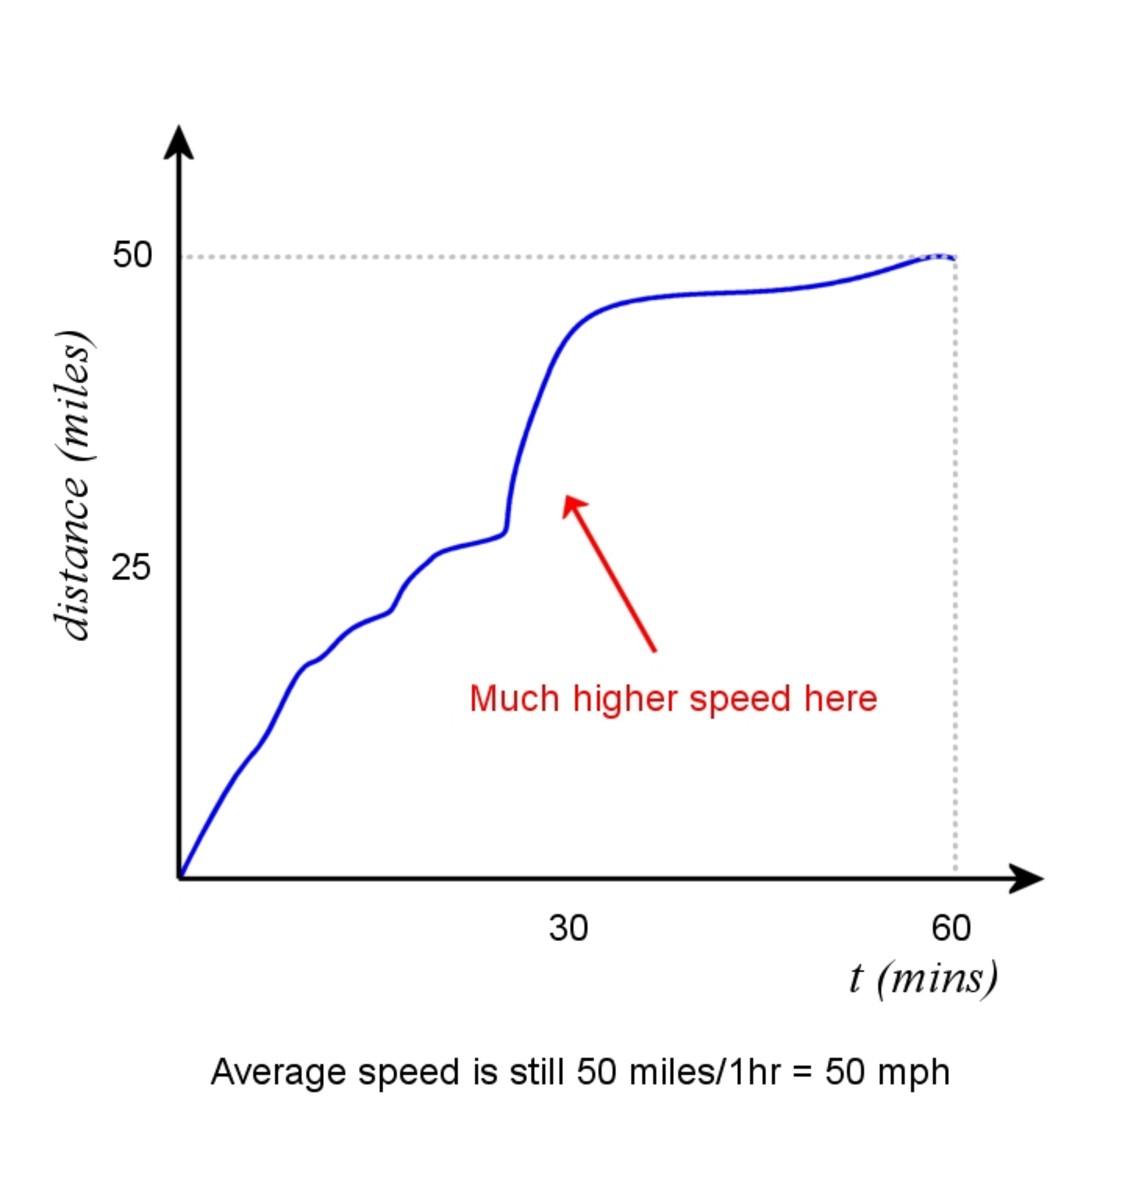 Graph of a vehicle travelling at a variable speed.